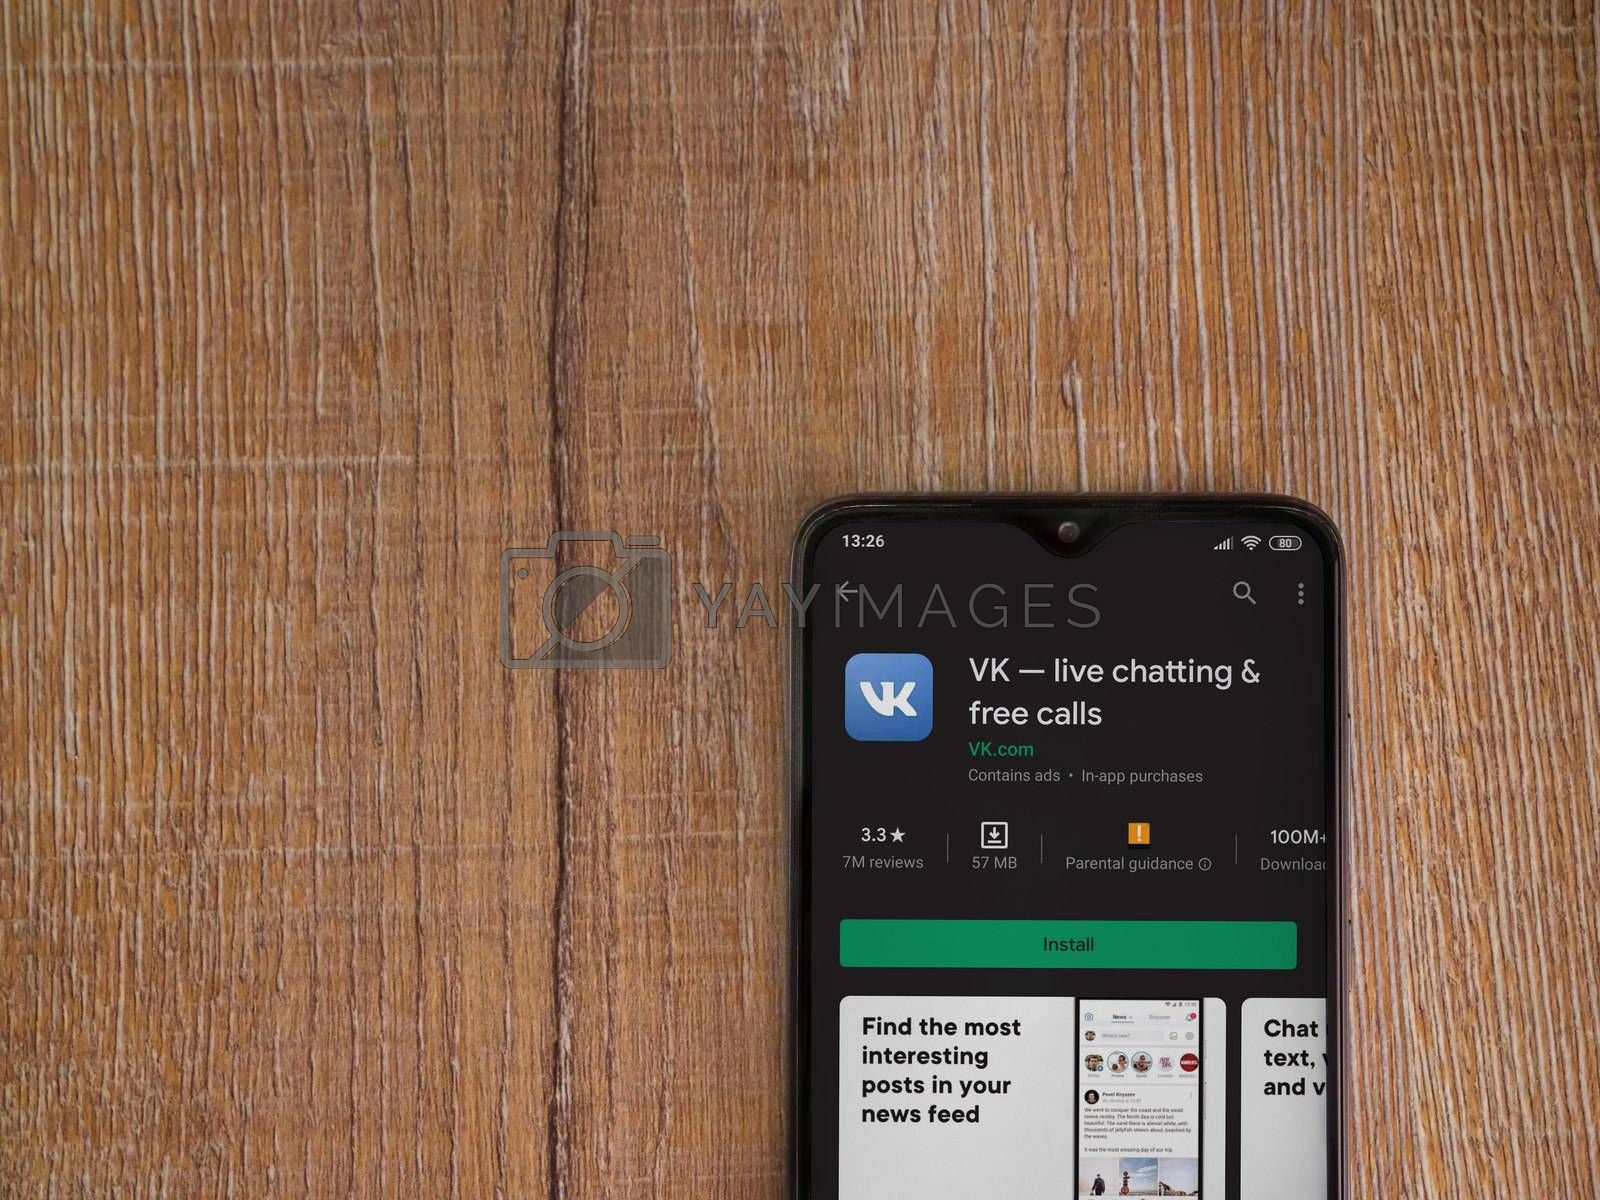 Lod, Israel - July 8, 2020: VK app play store page on the display of a black mobile smartphone on wooden background. Top view flat lay with copy space.